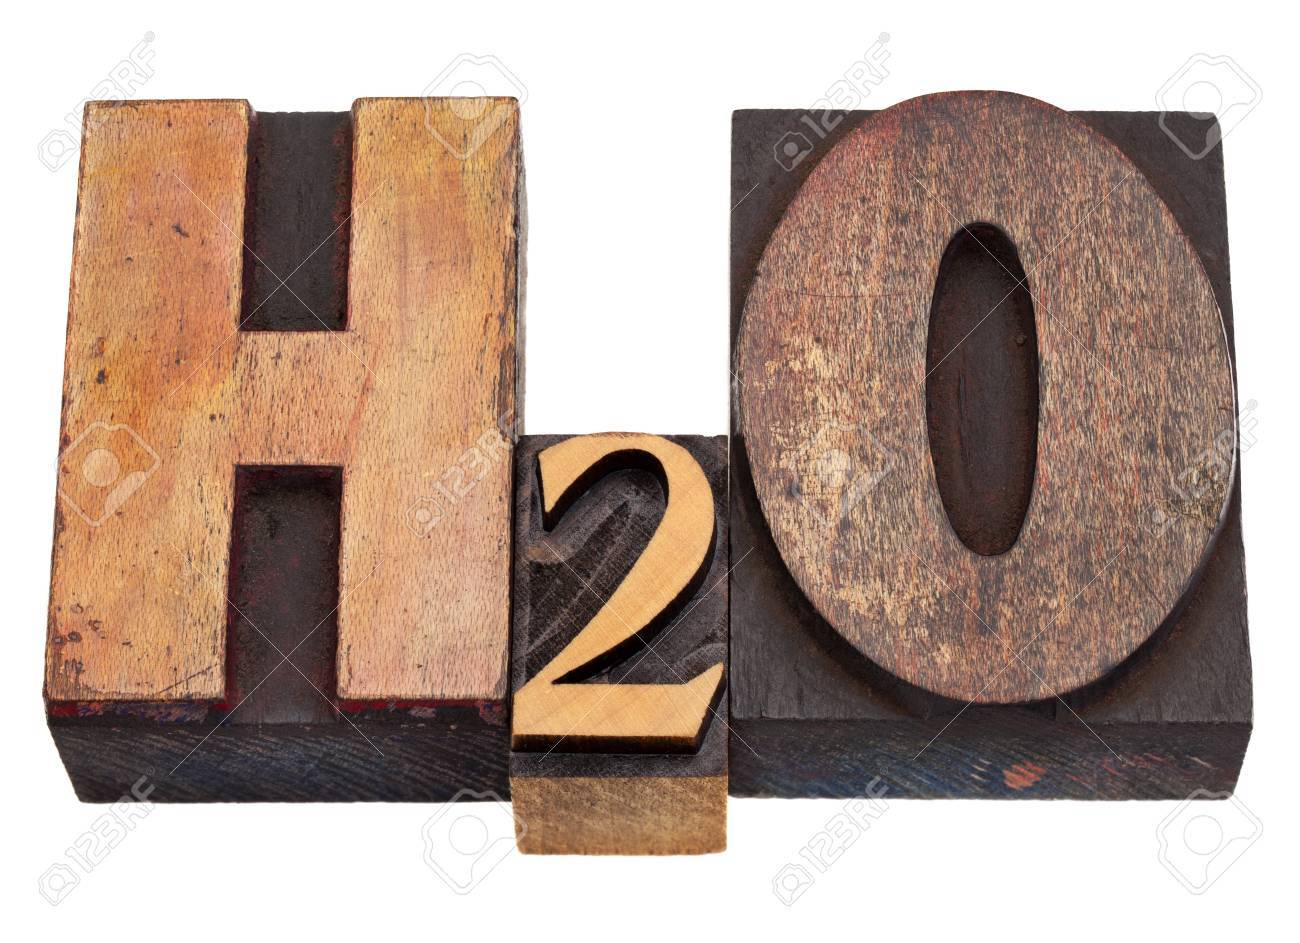 H2O - water chemical symbol in vintage wood letterpress printing blocks, stained by color inks, isolated on white Stock Photo - 8987628